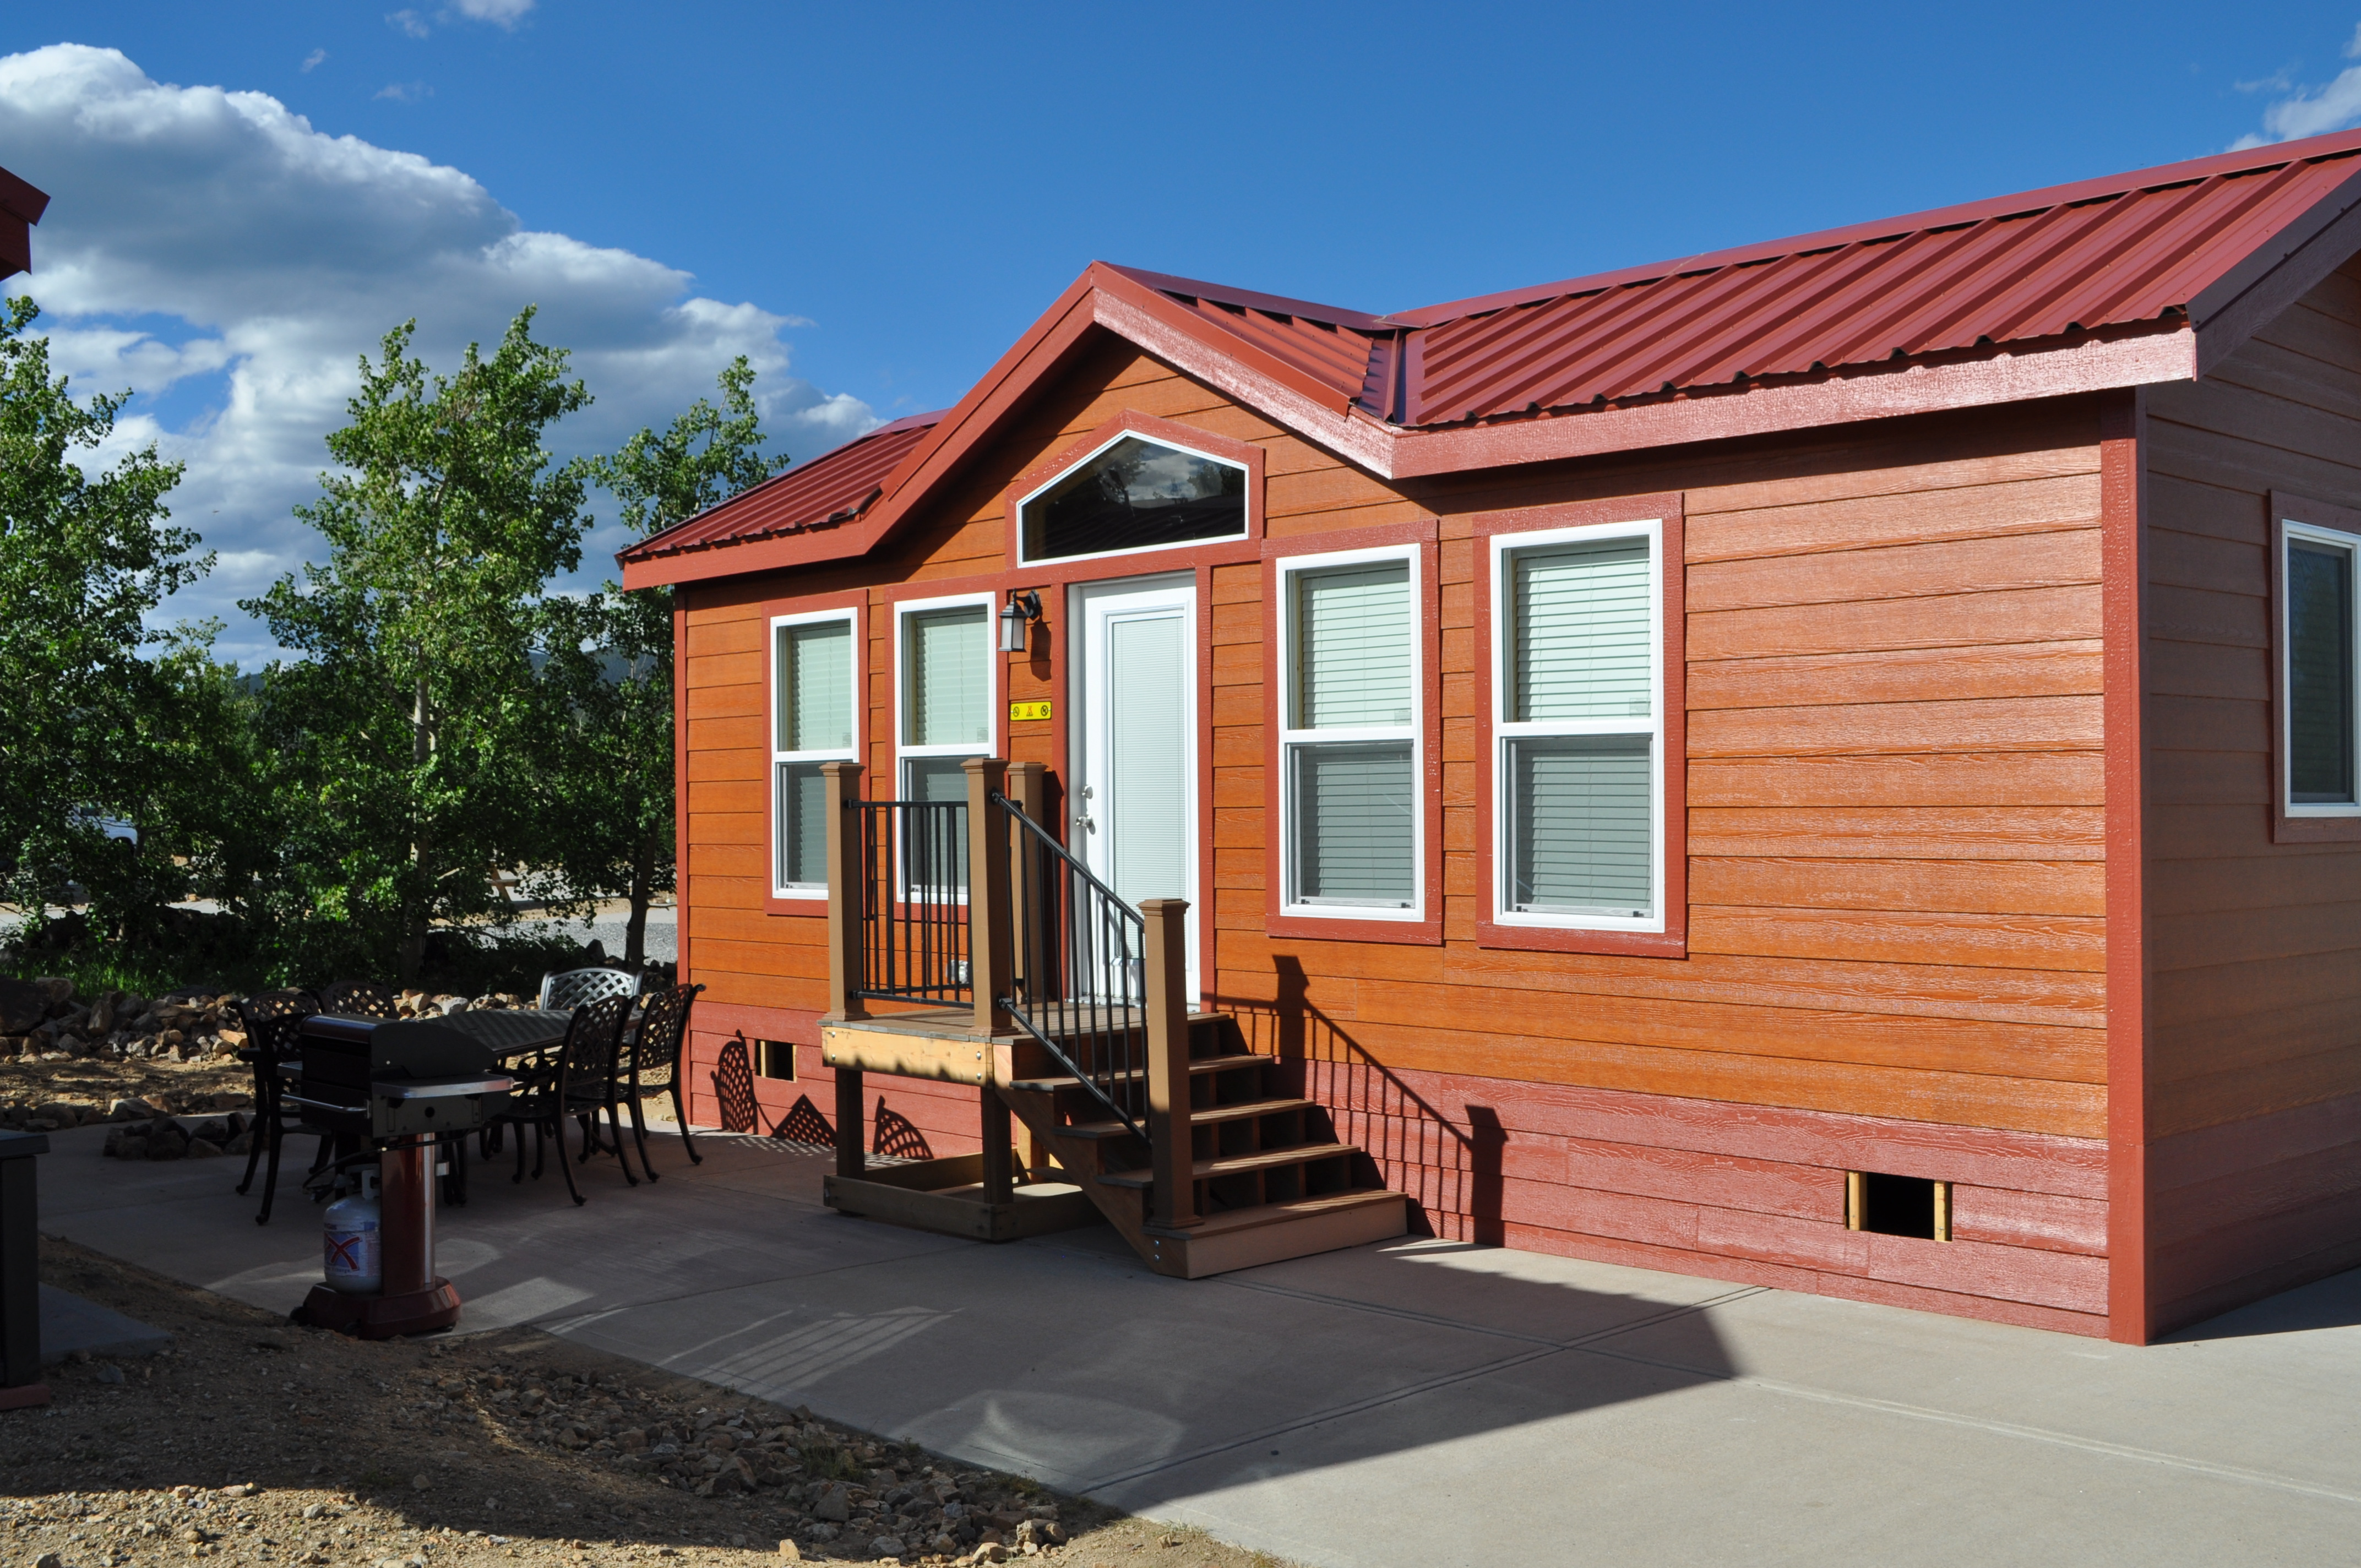 michigan shu pleasing rental slo denver of house northern rentals kwameanane lodge cabin cabins also com in